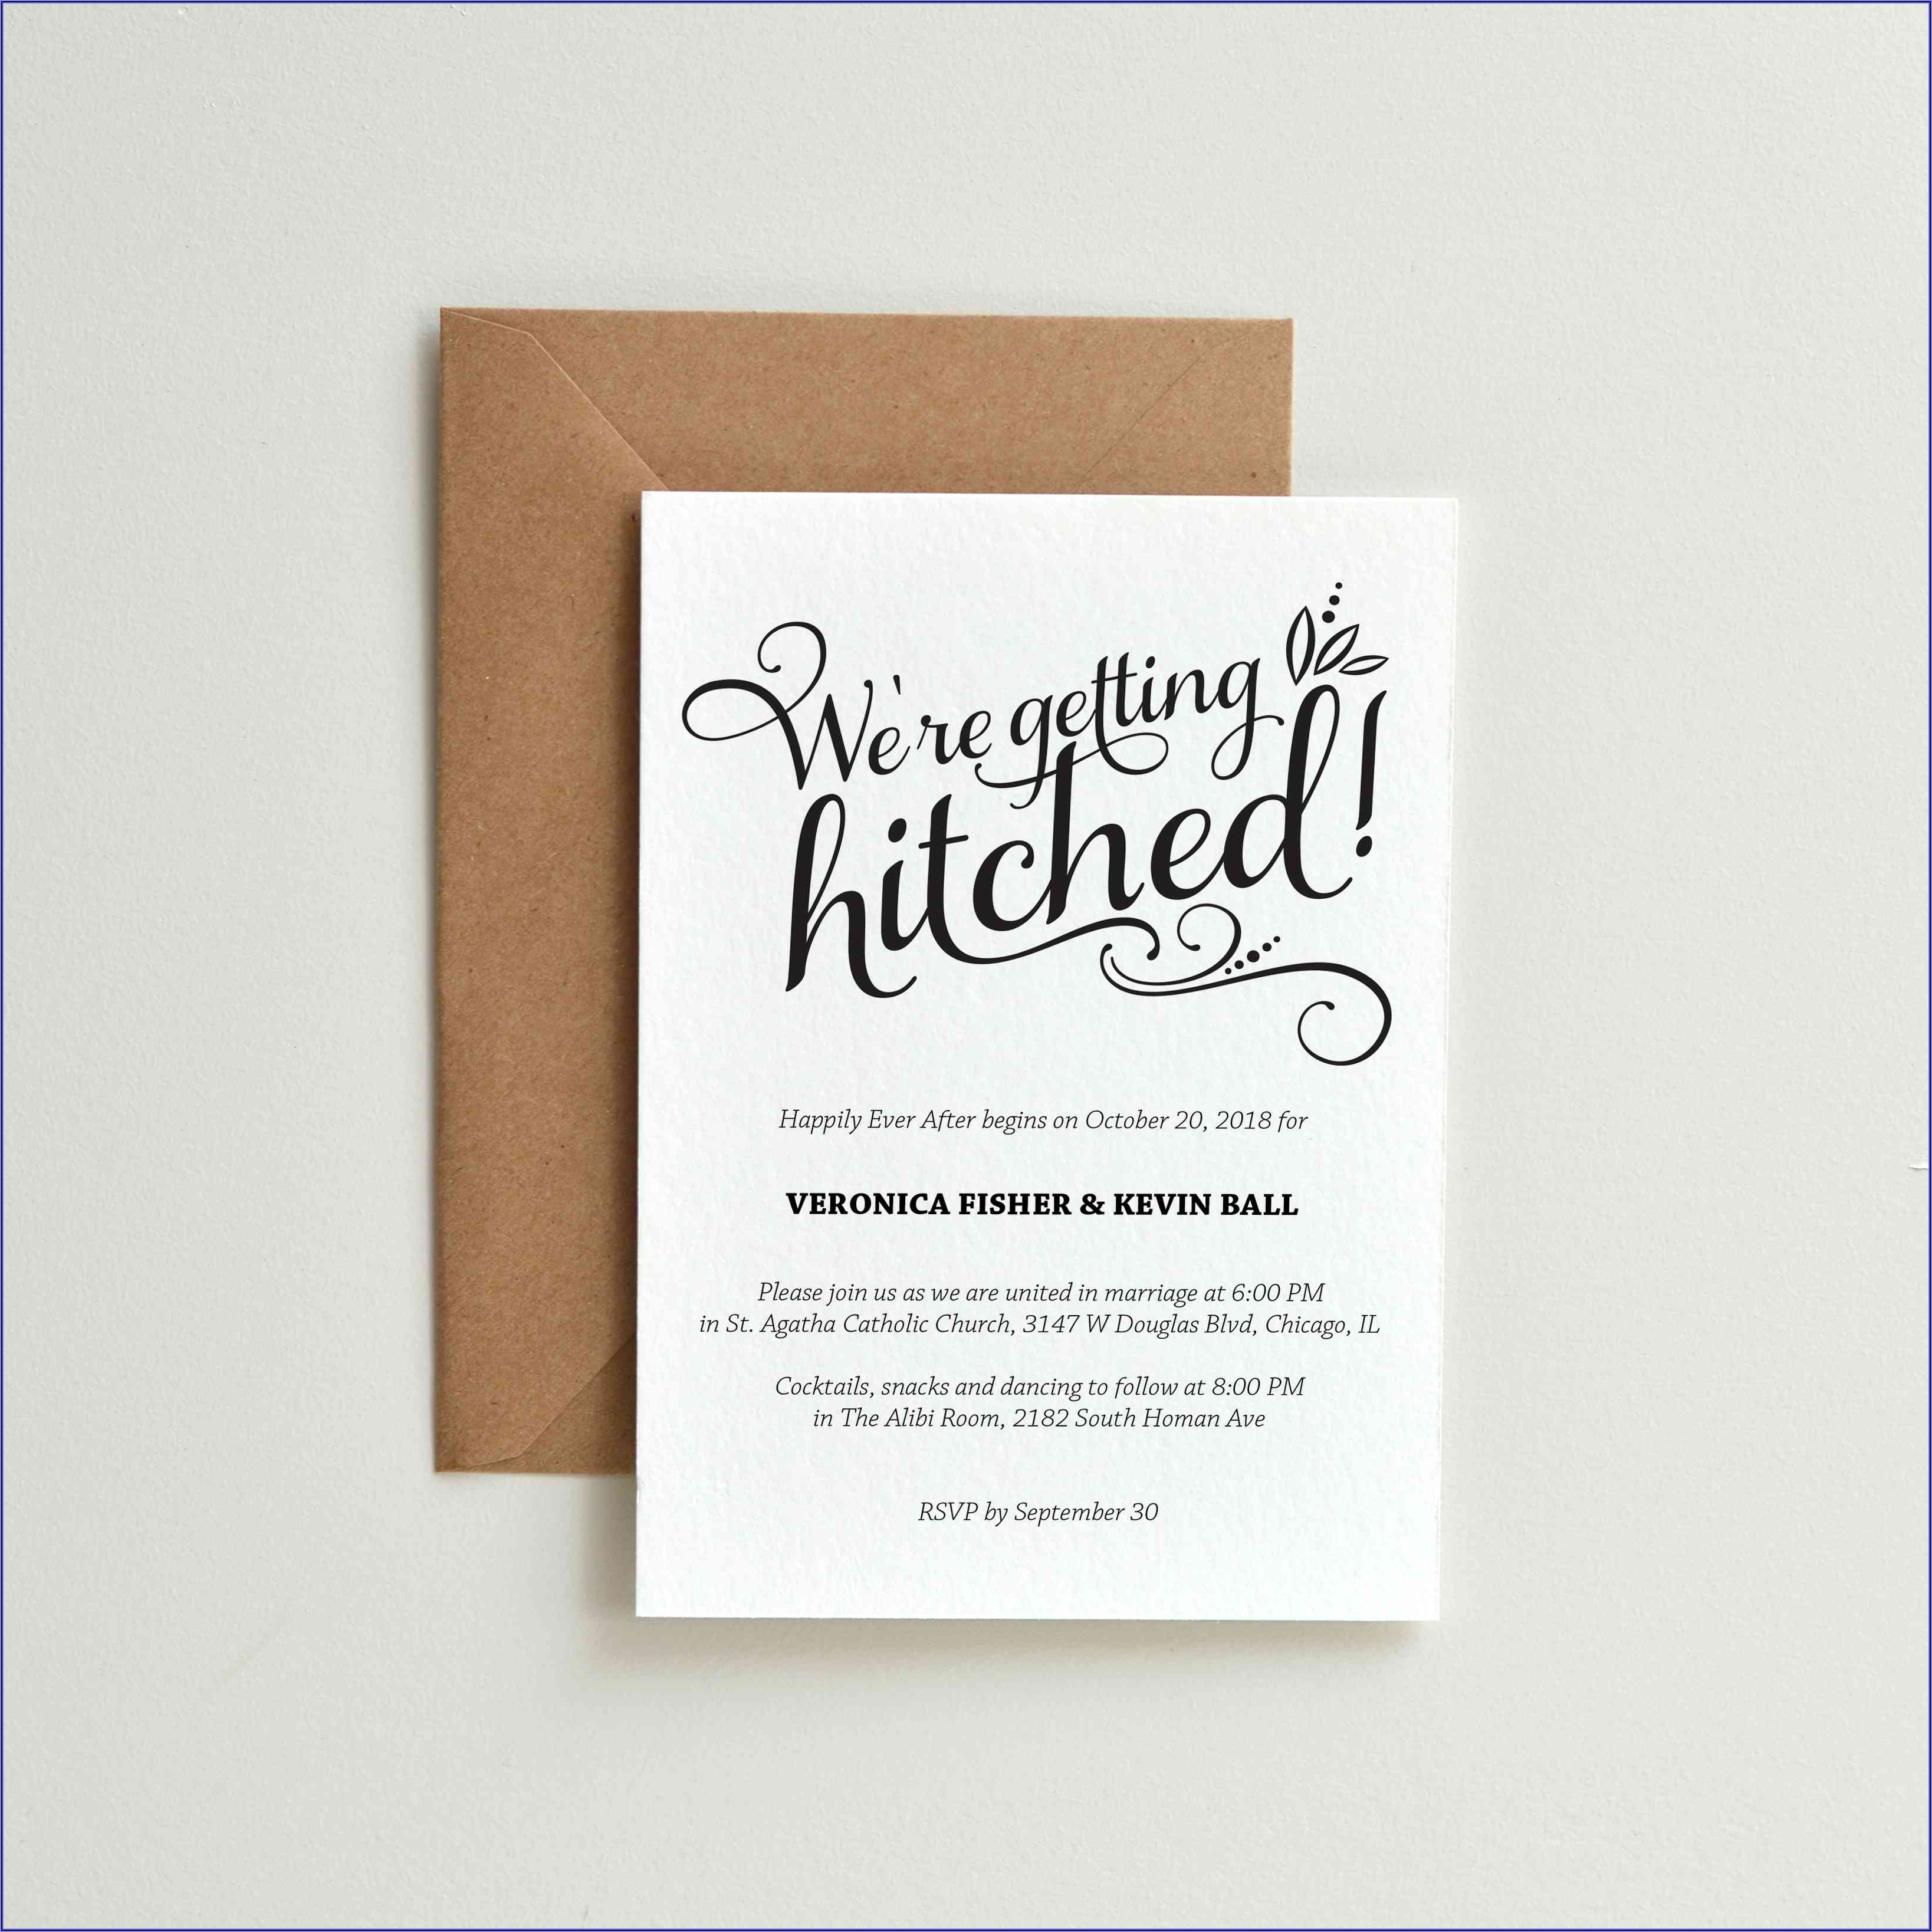 Funny Wedding Invitation Mail To Colleagues